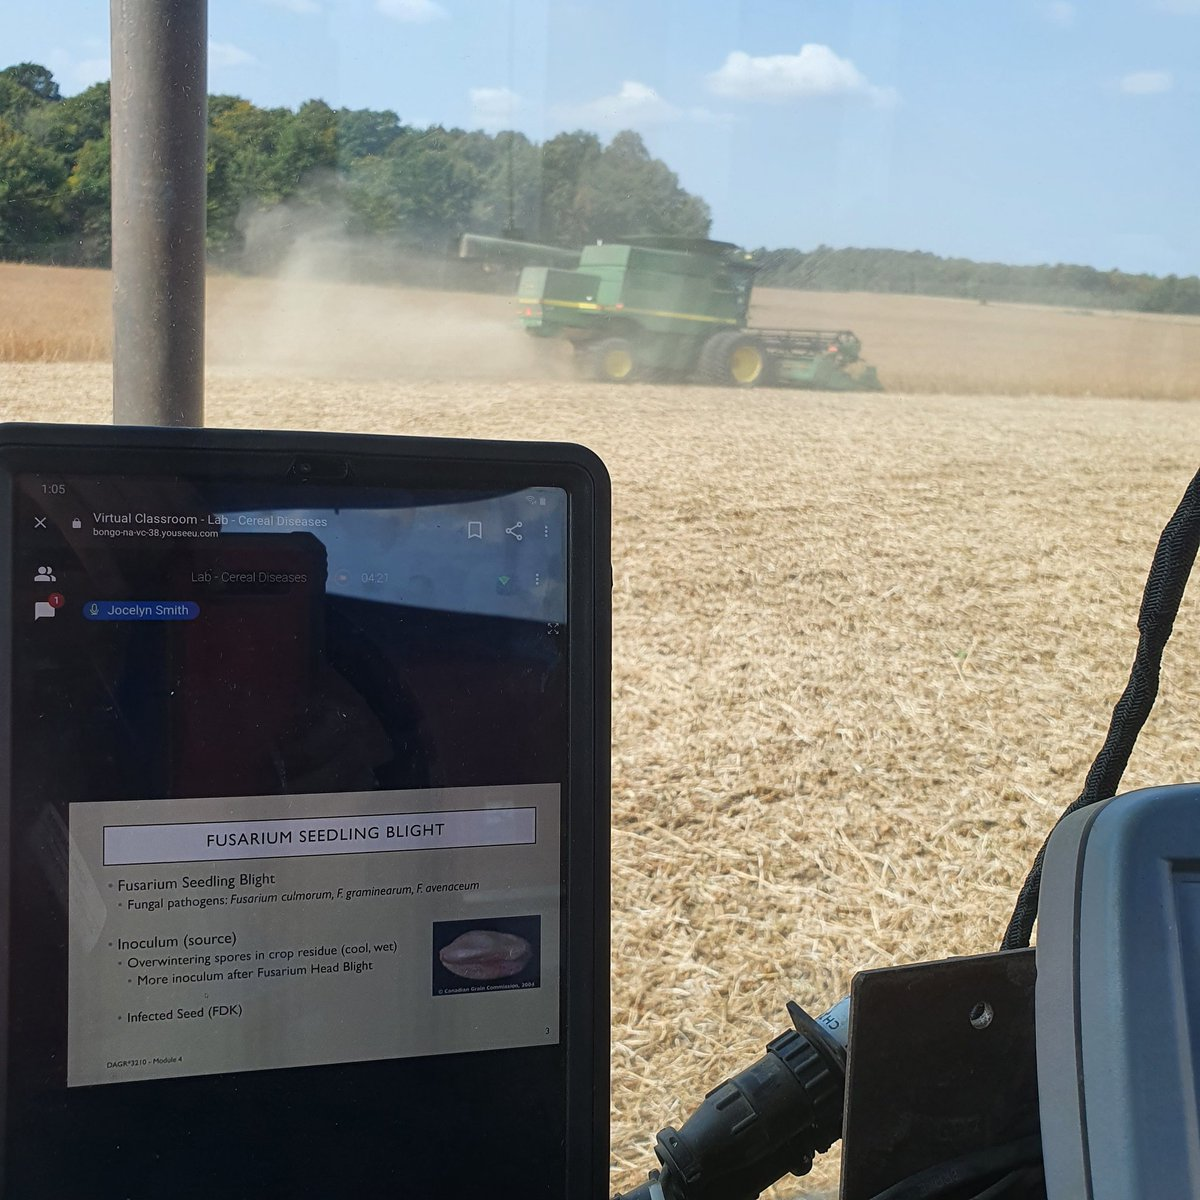 online school making it easy to learn & tackle harvest '20 all at the same time. let the dust fly! 🚜 https://t.co/pGZS9MlUKq